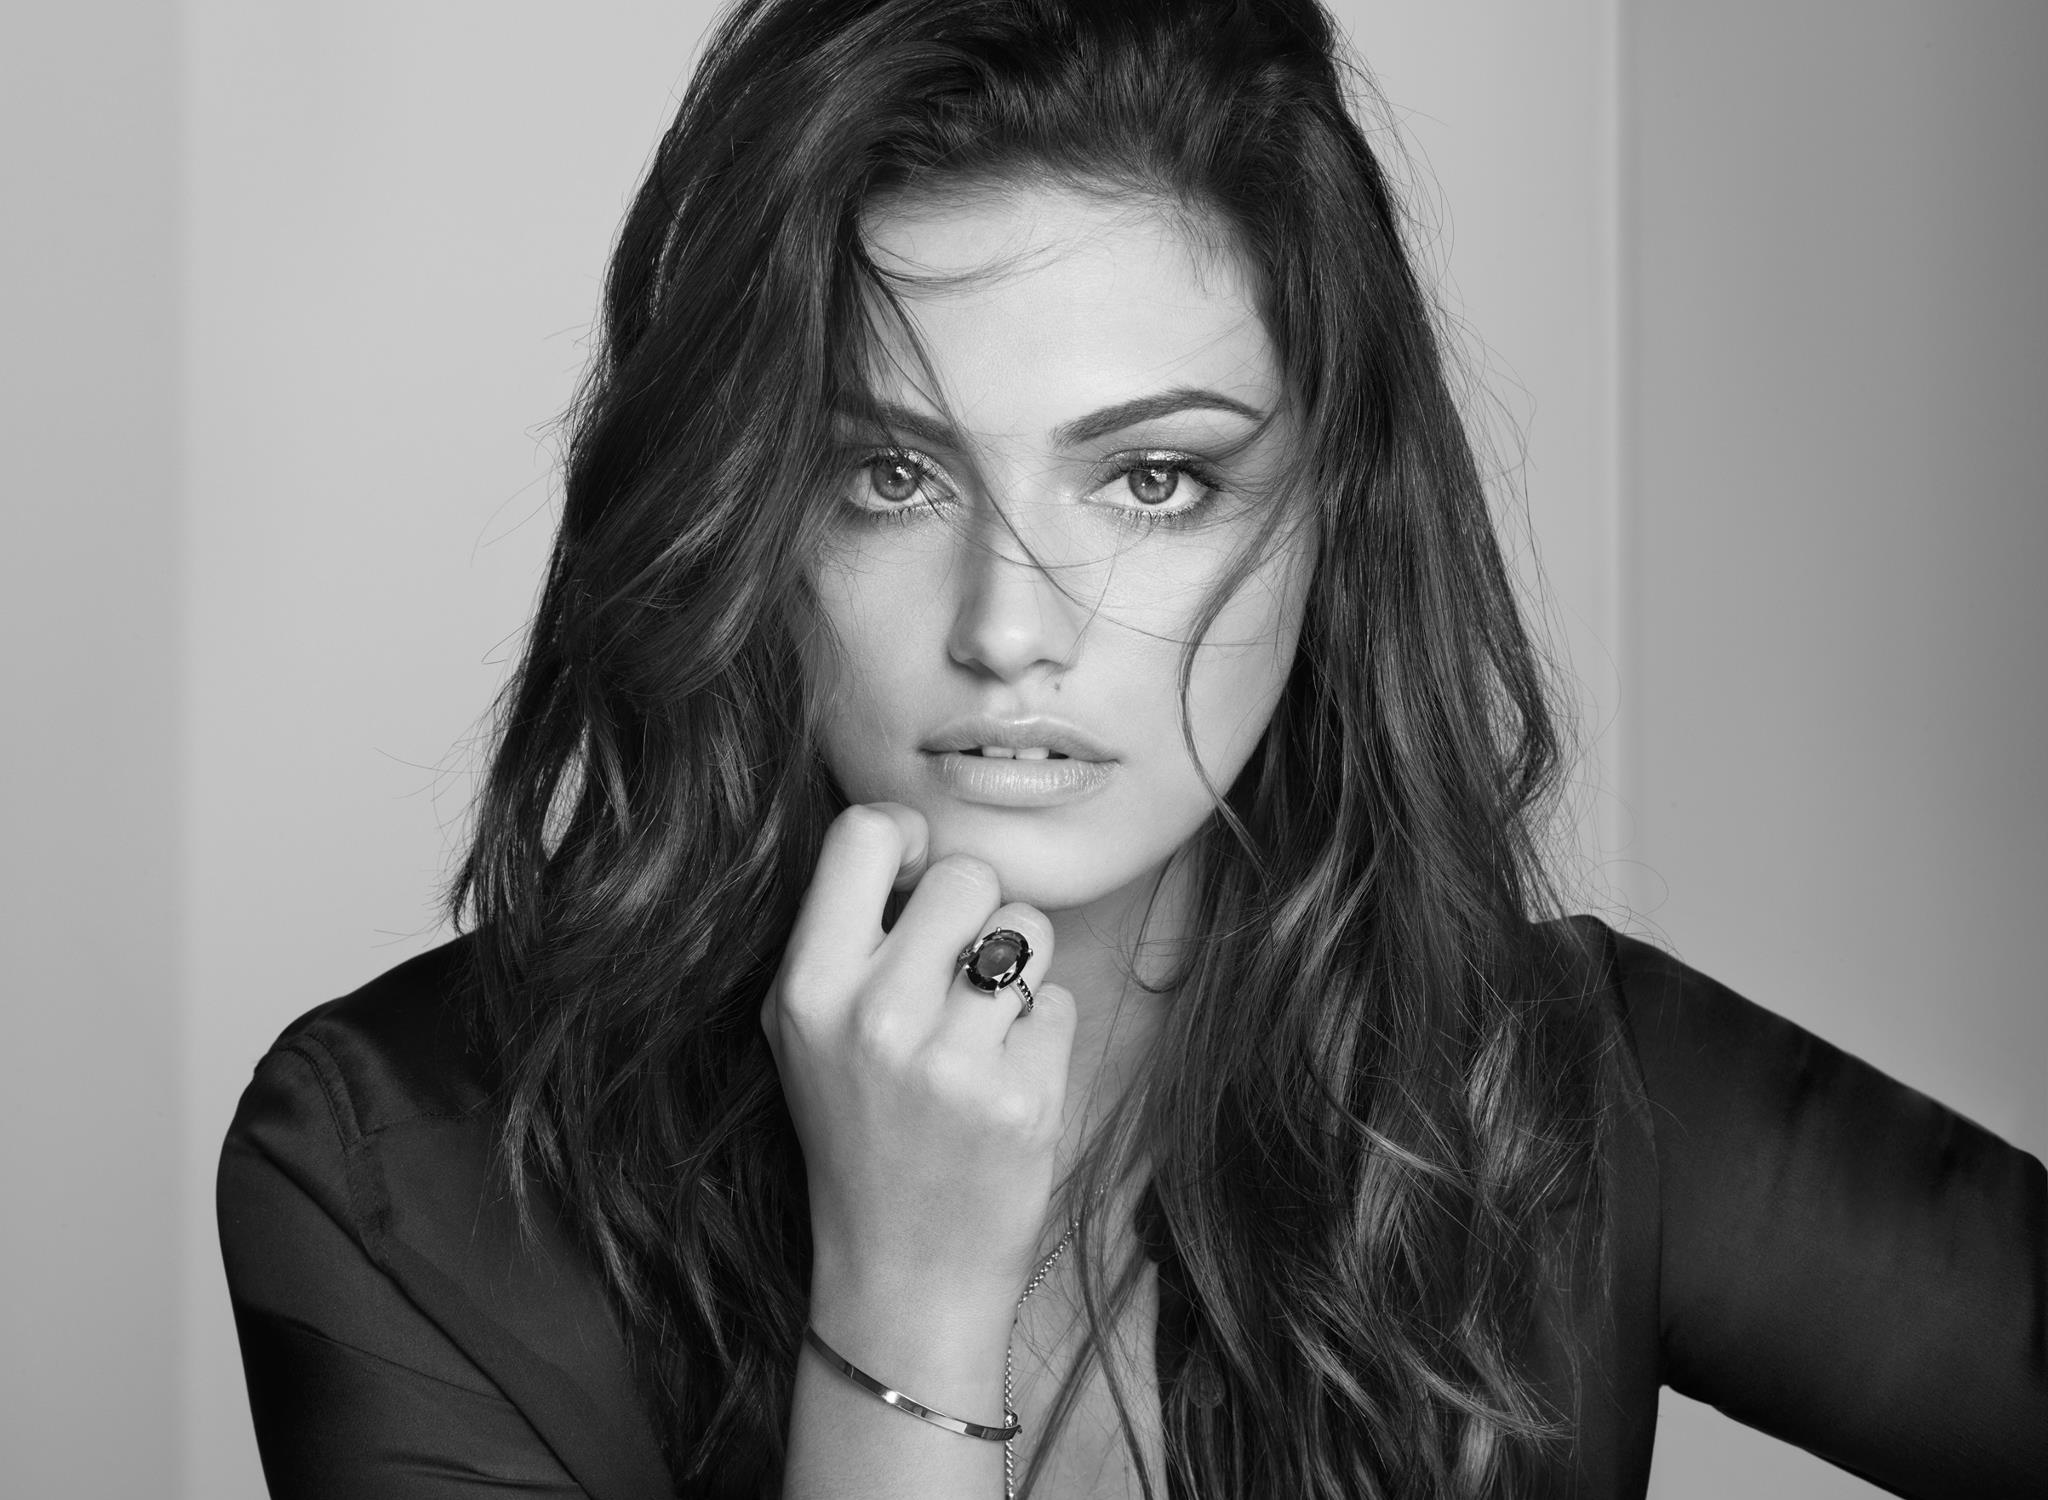 phoebe tonkin tumblrphoebe tonkin gif, phoebe tonkin tumblr, phoebe tonkin photoshoot, phoebe tonkin png, phoebe tonkin 2016, phoebe tonkin vk, phoebe tonkin 2017, phoebe tonkin instagram, phoebe tonkin paul wesley, phoebe tonkin gif hunt, phoebe tonkin gallery, phoebe tonkin wikipedia, phoebe tonkin h2o, phoebe tonkin films, phoebe tonkin interview, phoebe tonkin screencaps, phoebe tonkin style, phoebe tonkin street style, phoebe tonkin and teresa palmer, phoebe tonkin site